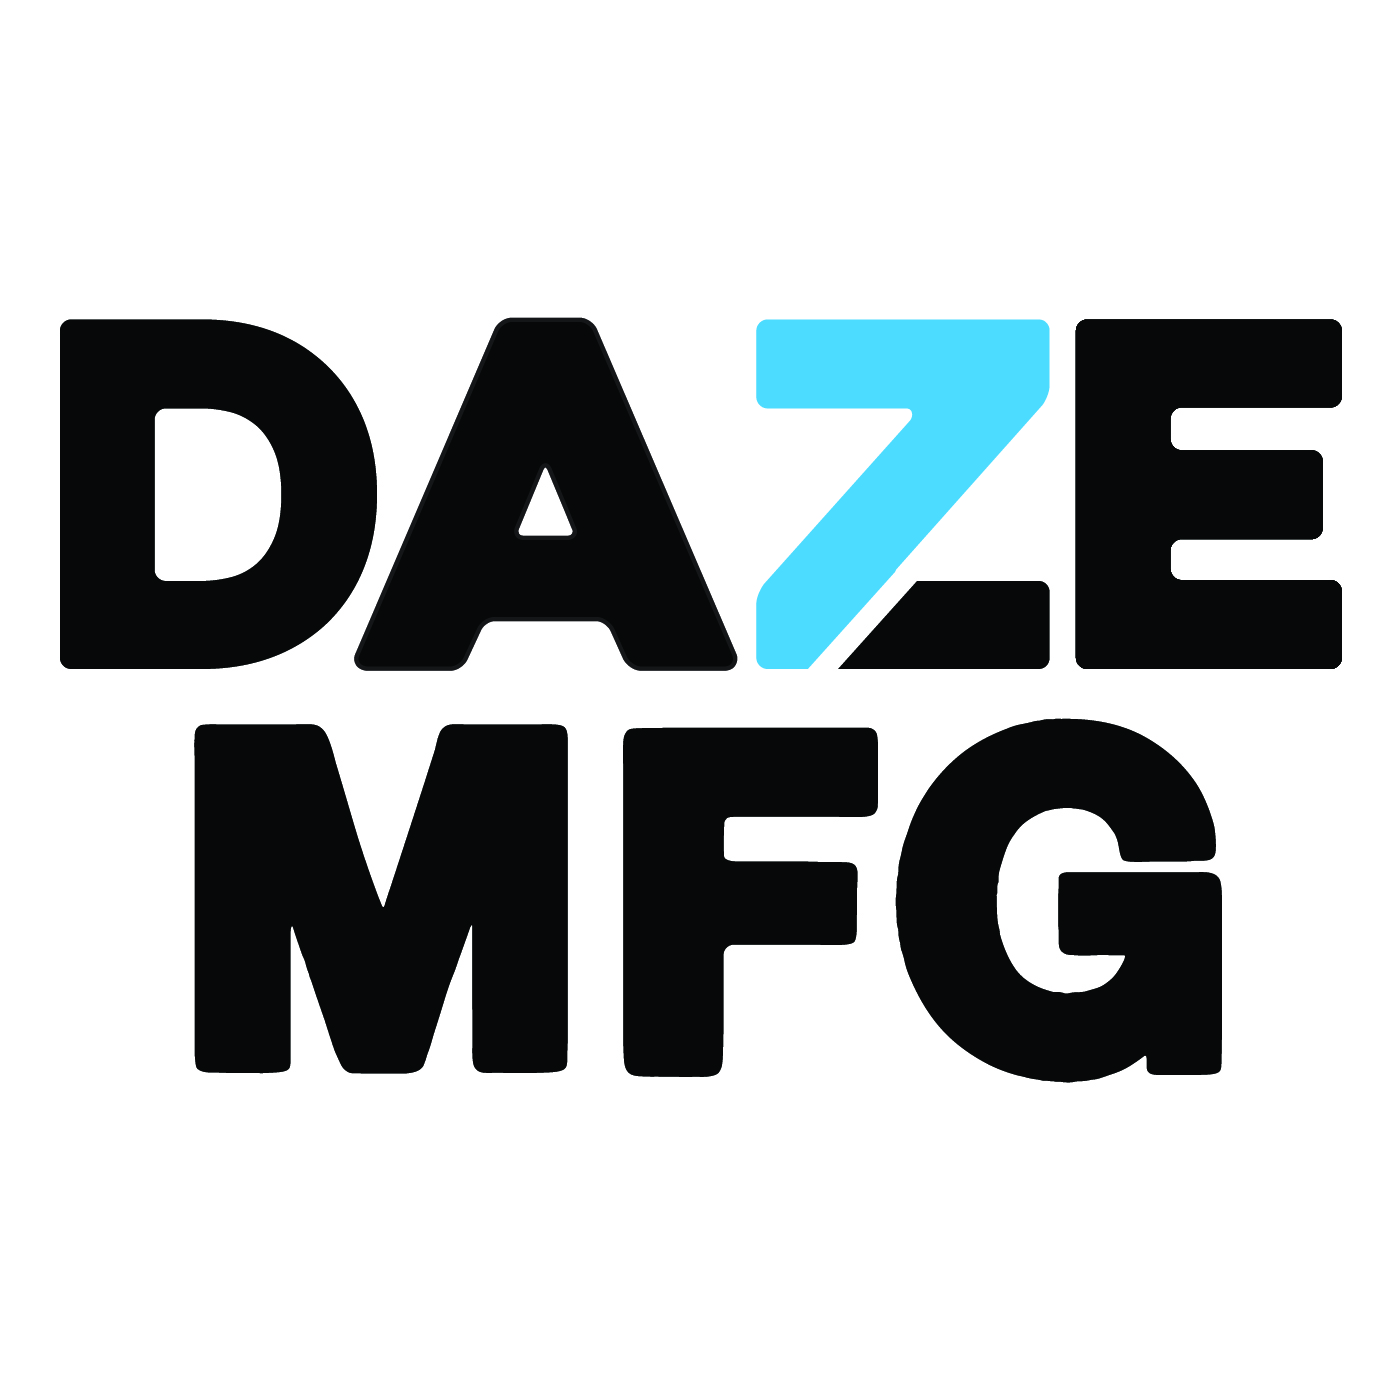 7 Daze Mfg Coupons & Promo codes